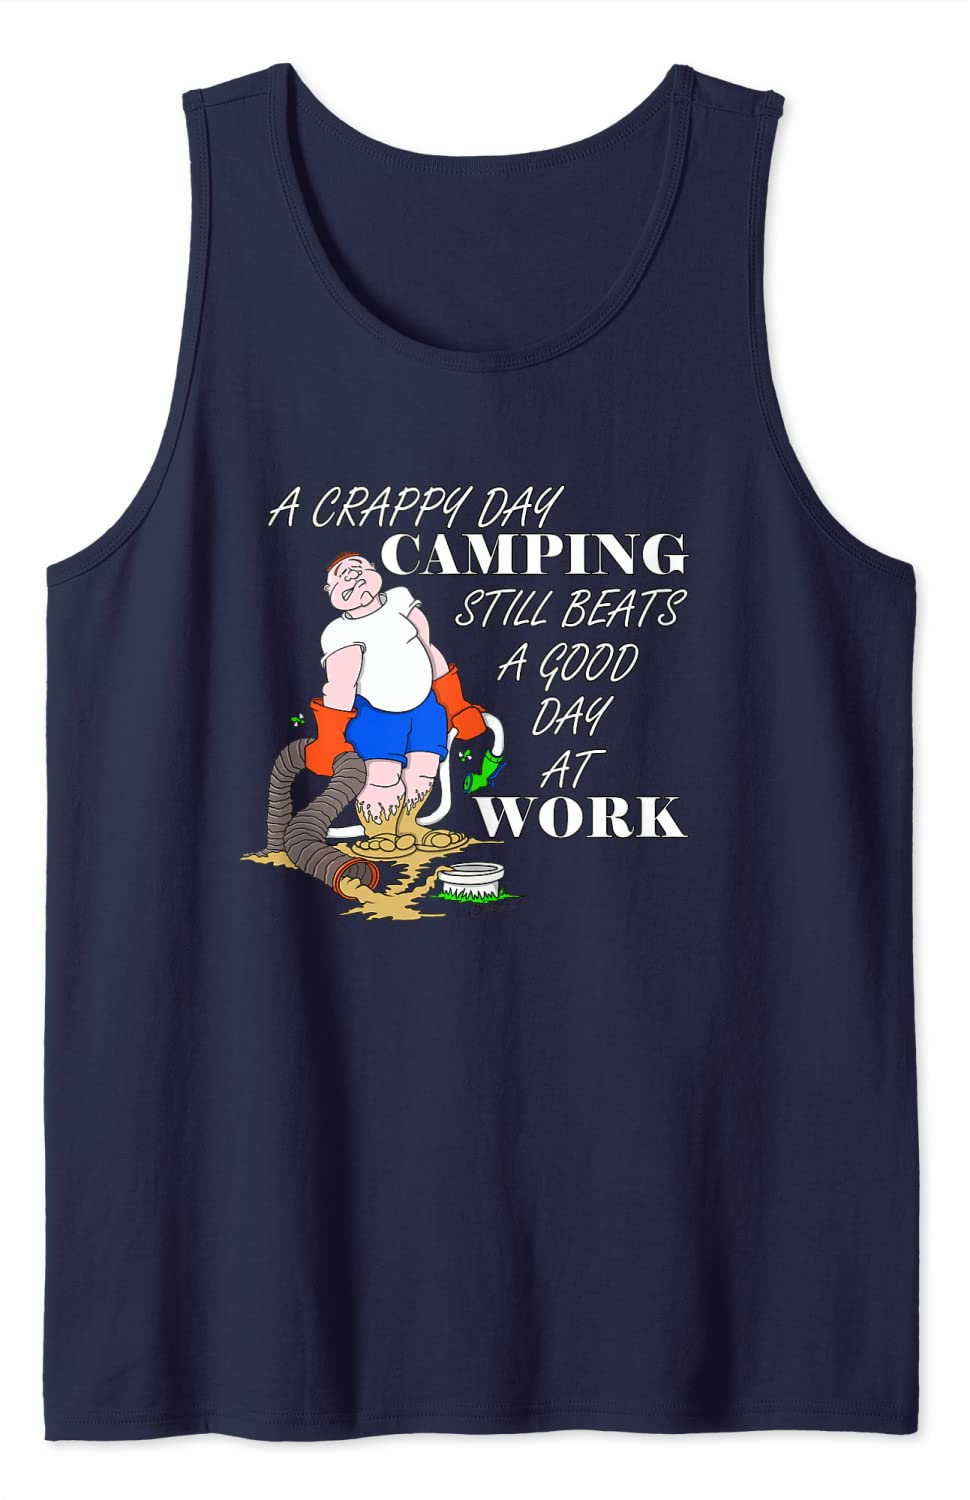 A Crappy Day Camping Still Beats A Good Day At Work Tank Top